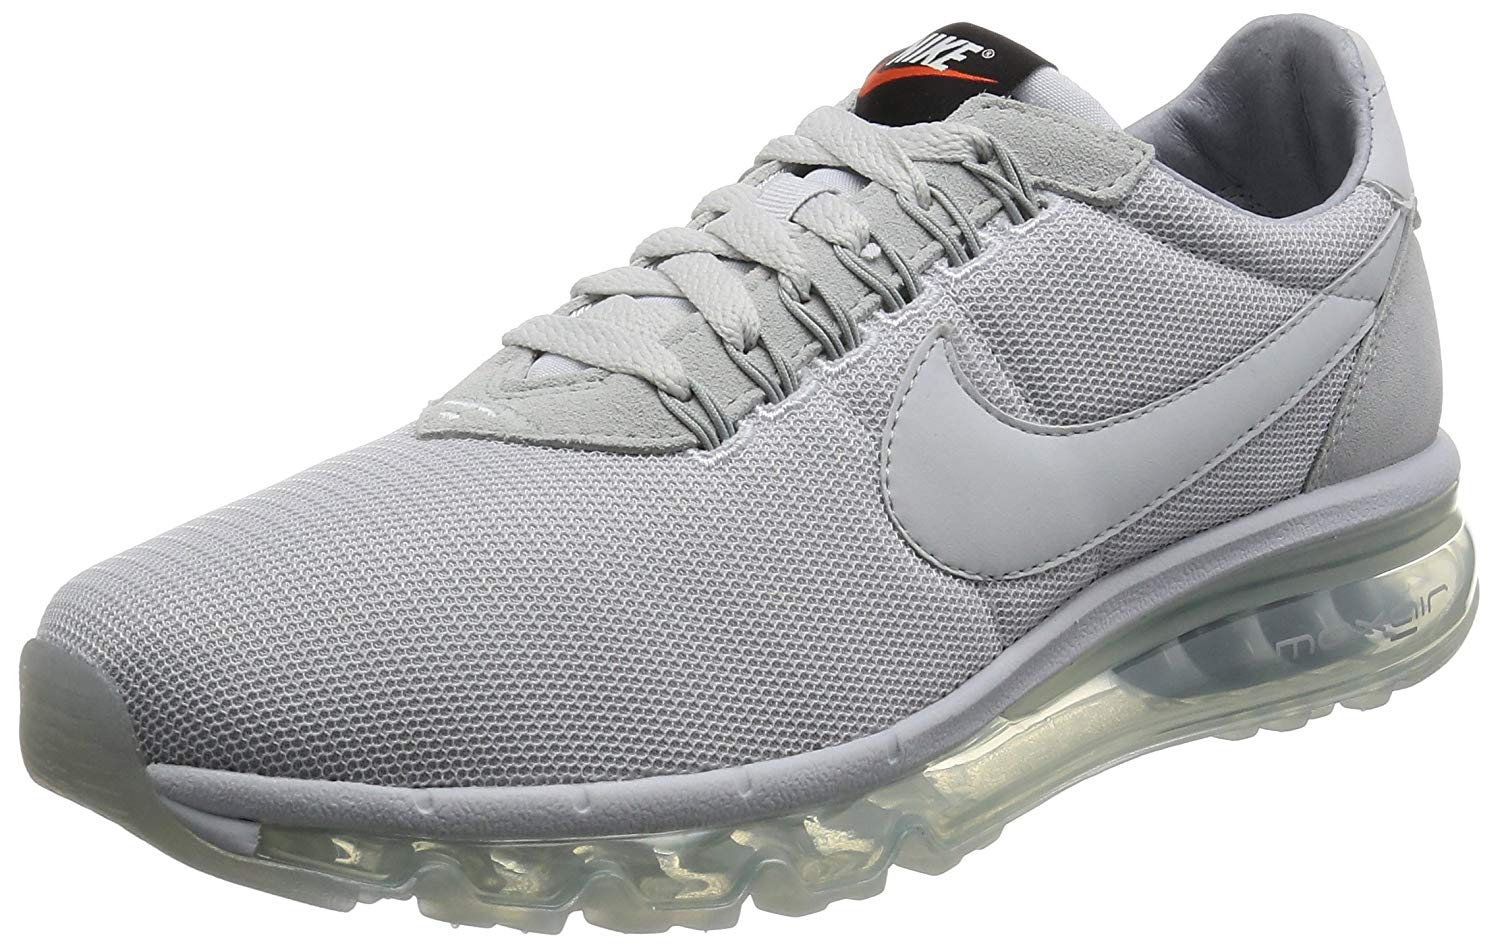 purchase cheap b8083 872bd Nike Mens Air Max Zero Essential Low Top Lace Up Running, White, Size 10.0  j9p1